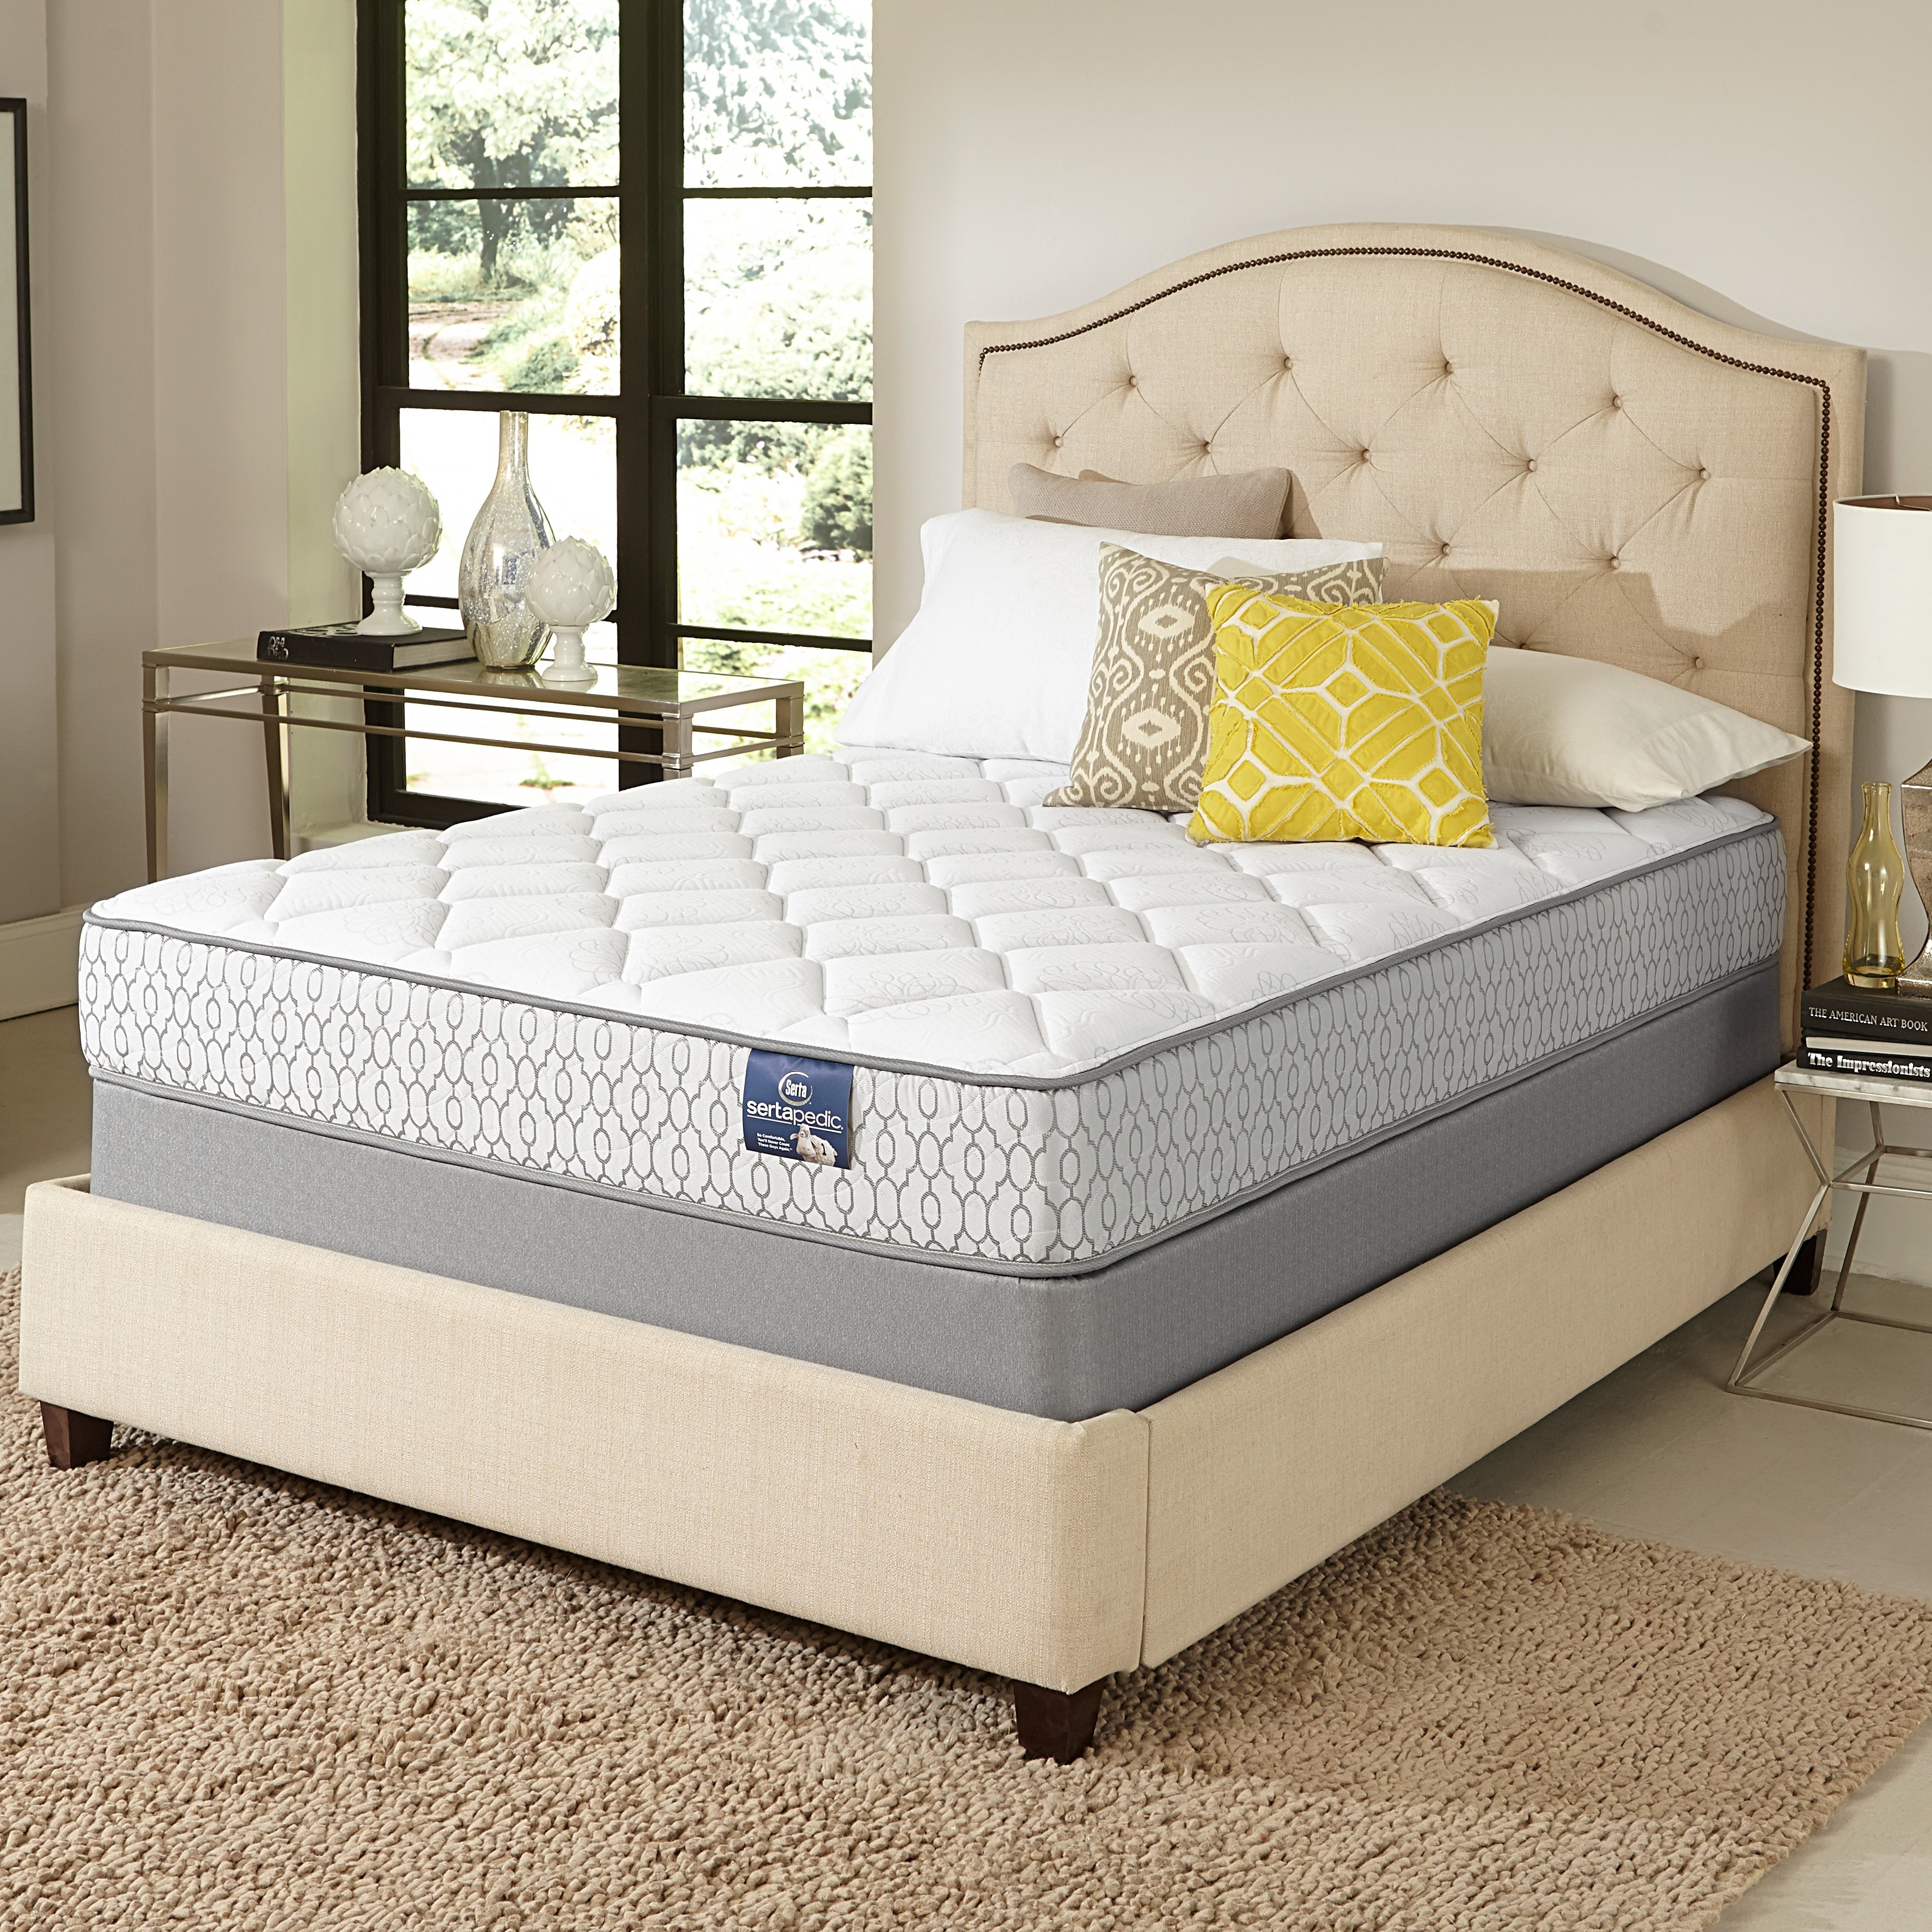 Serta Amazement Plush Full sized Mattress Set Free Shipping